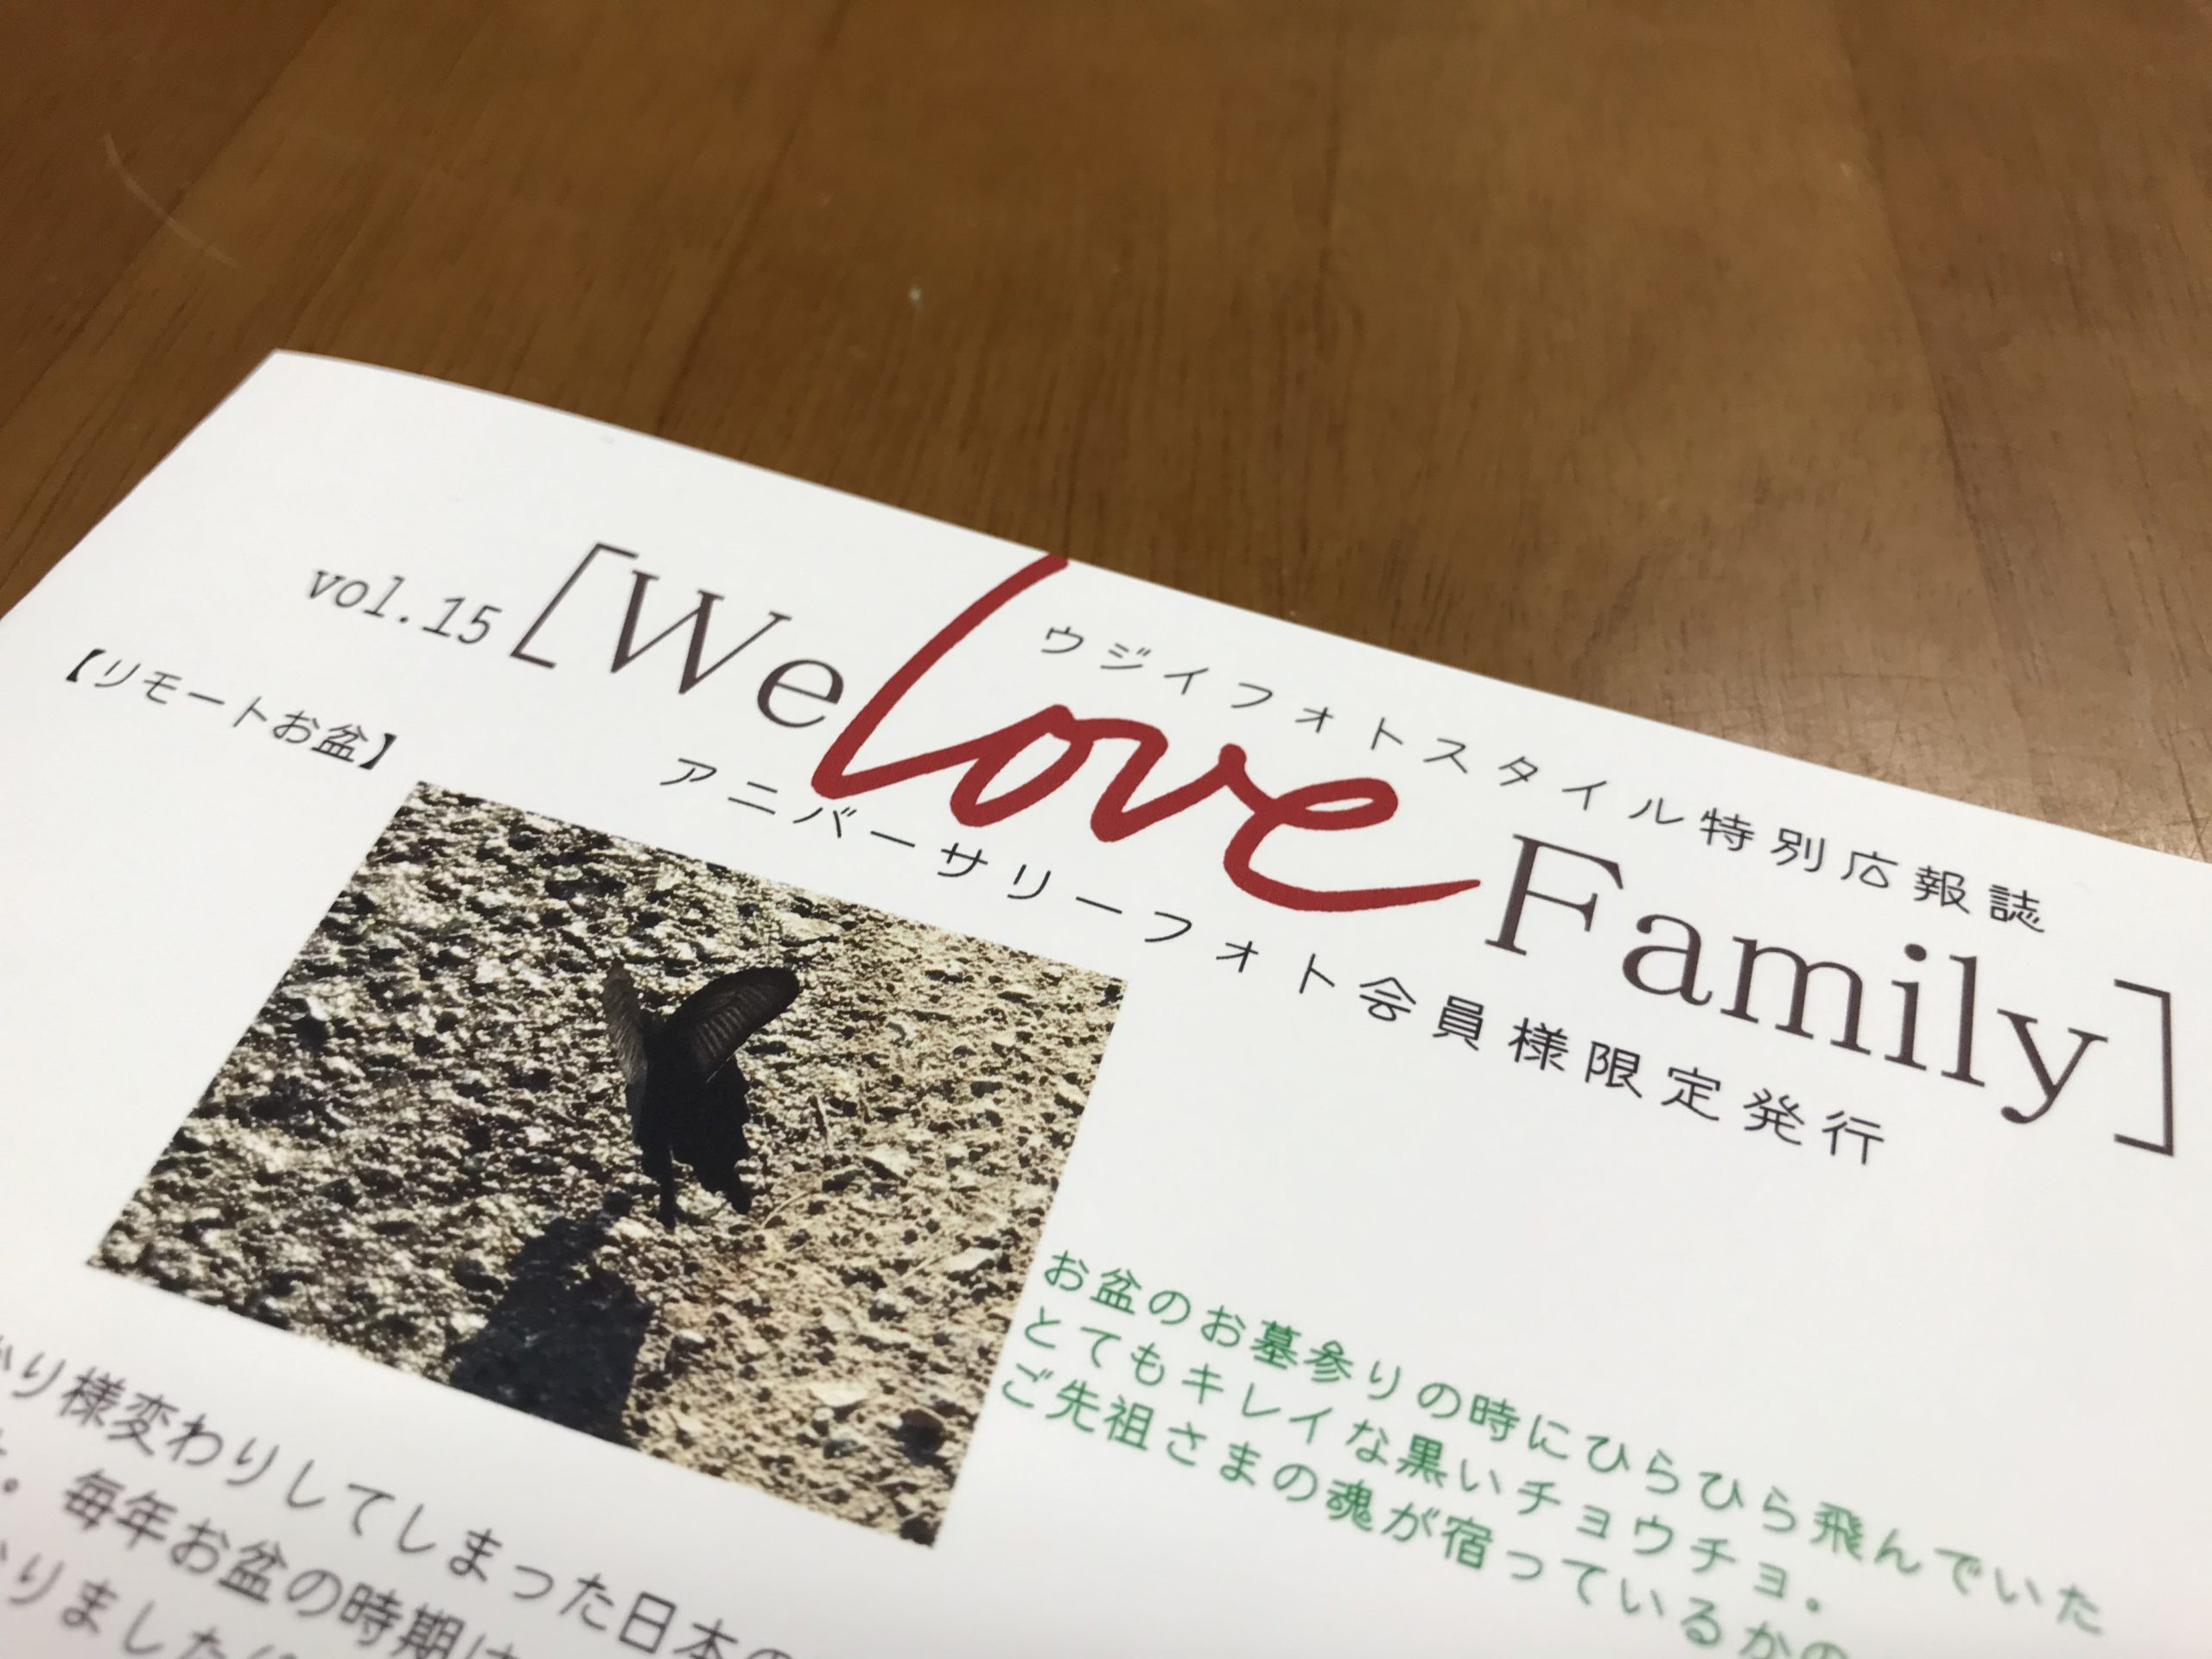 We love family   vol.15